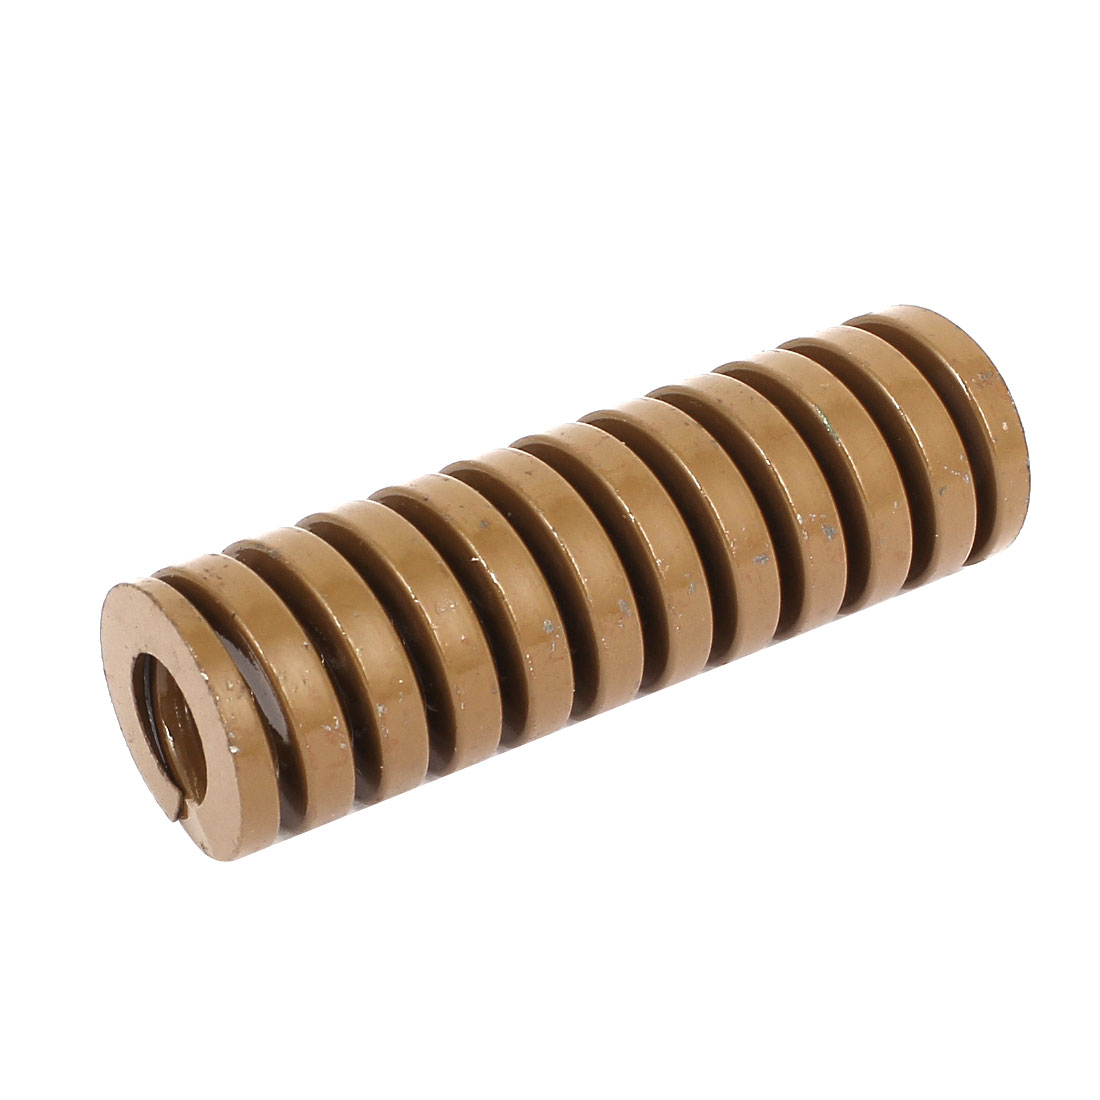 25mm OD 80mm Long Heavy Load Coil Stamping Compression Mold Die Spring Brown